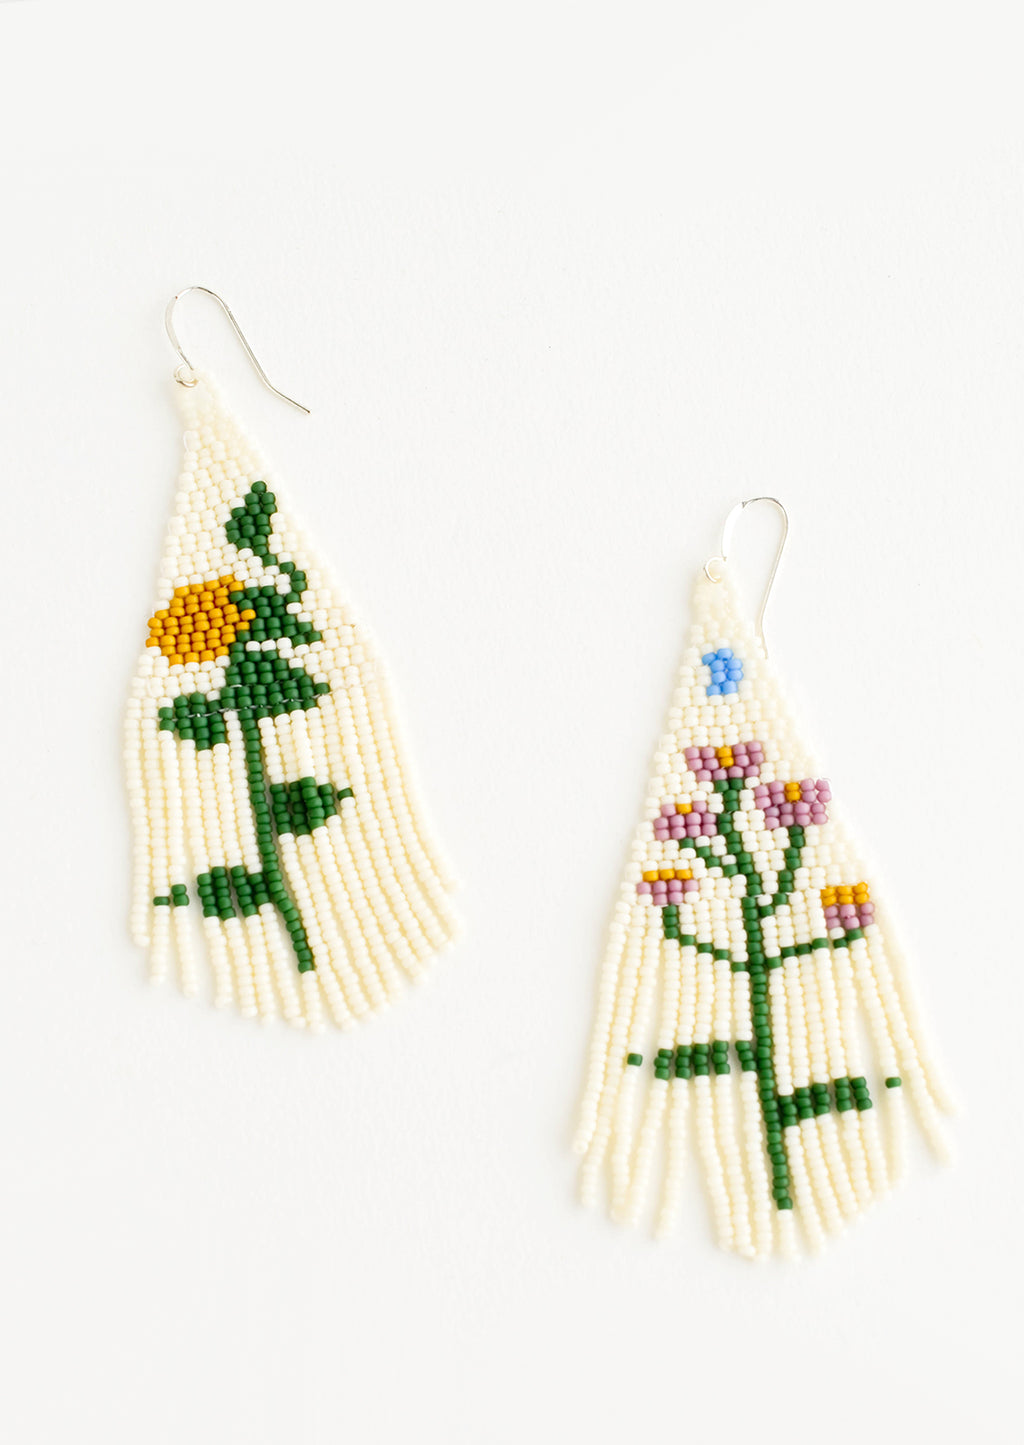 1: Cream colored beaded fringe earrings each depicting a different flower.